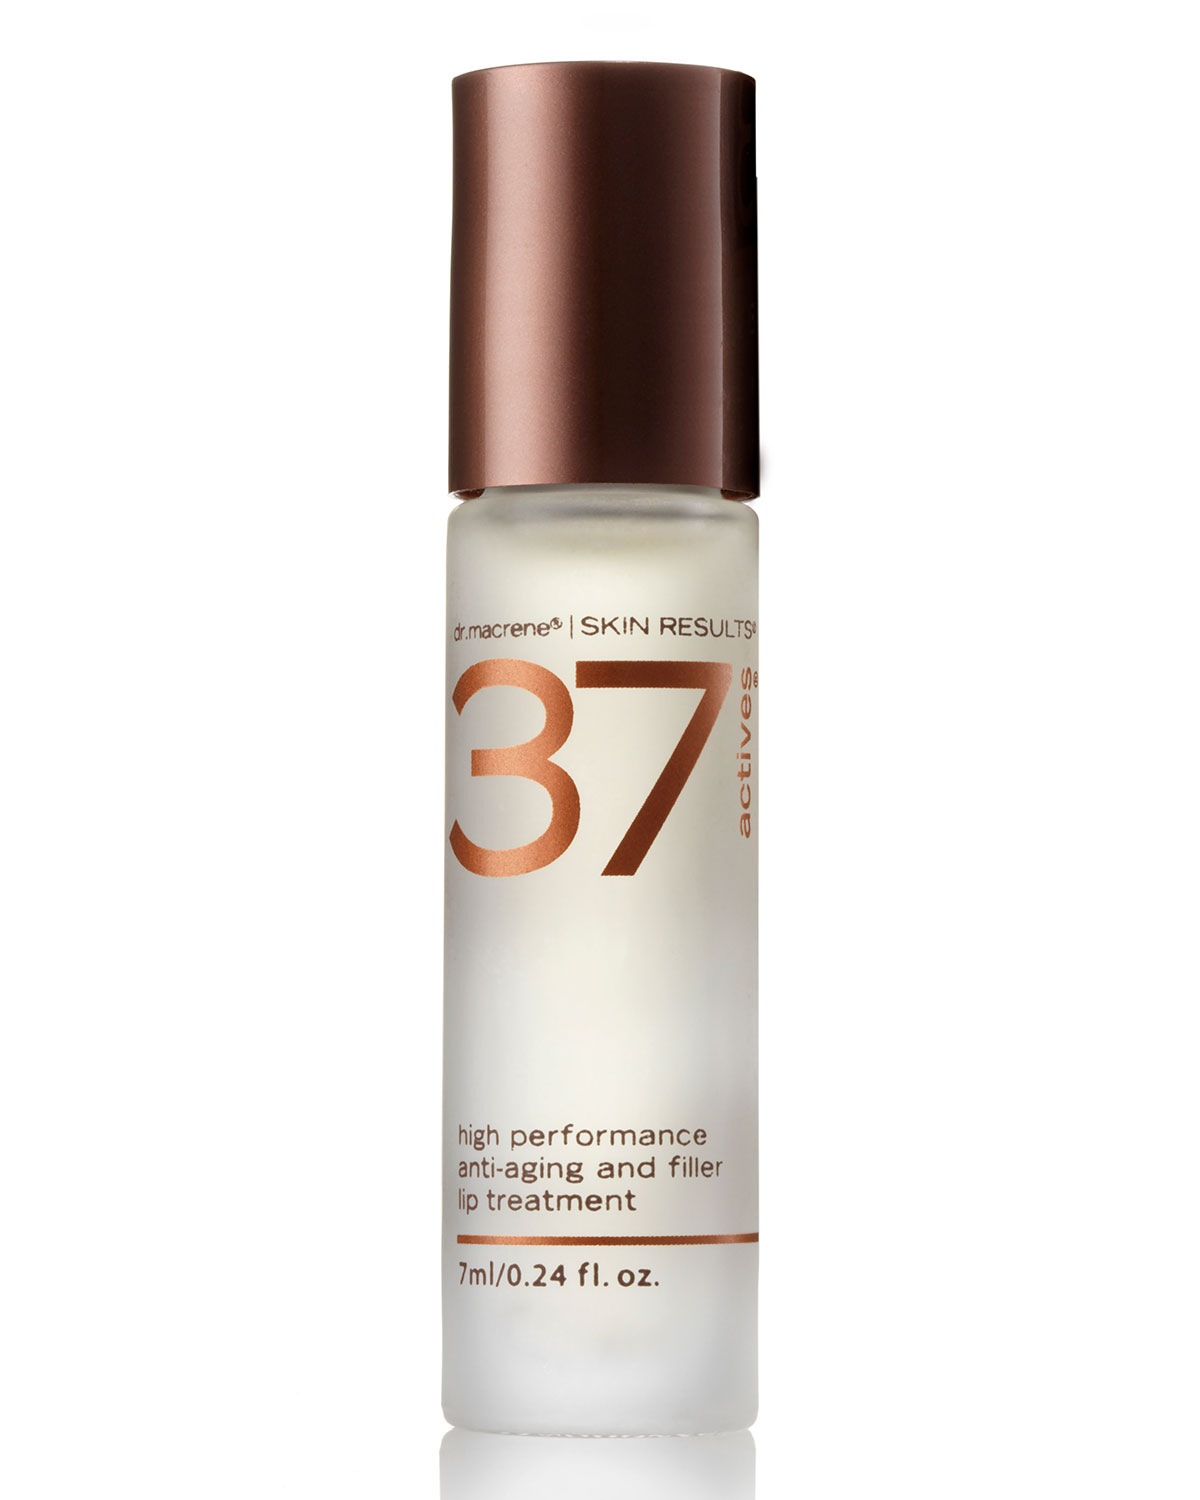 37 ACTIVES High Performance Anti-Aging And Filler Lip Treatment, 7 Ml